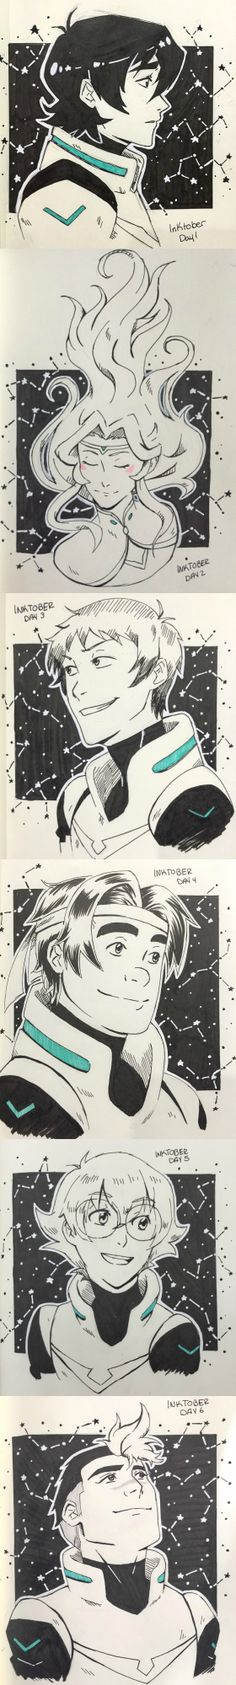 Inktober Voltron: Legendary Defender paladins, Shiro, lance, Keith, Hunk, Pidge, and Allura